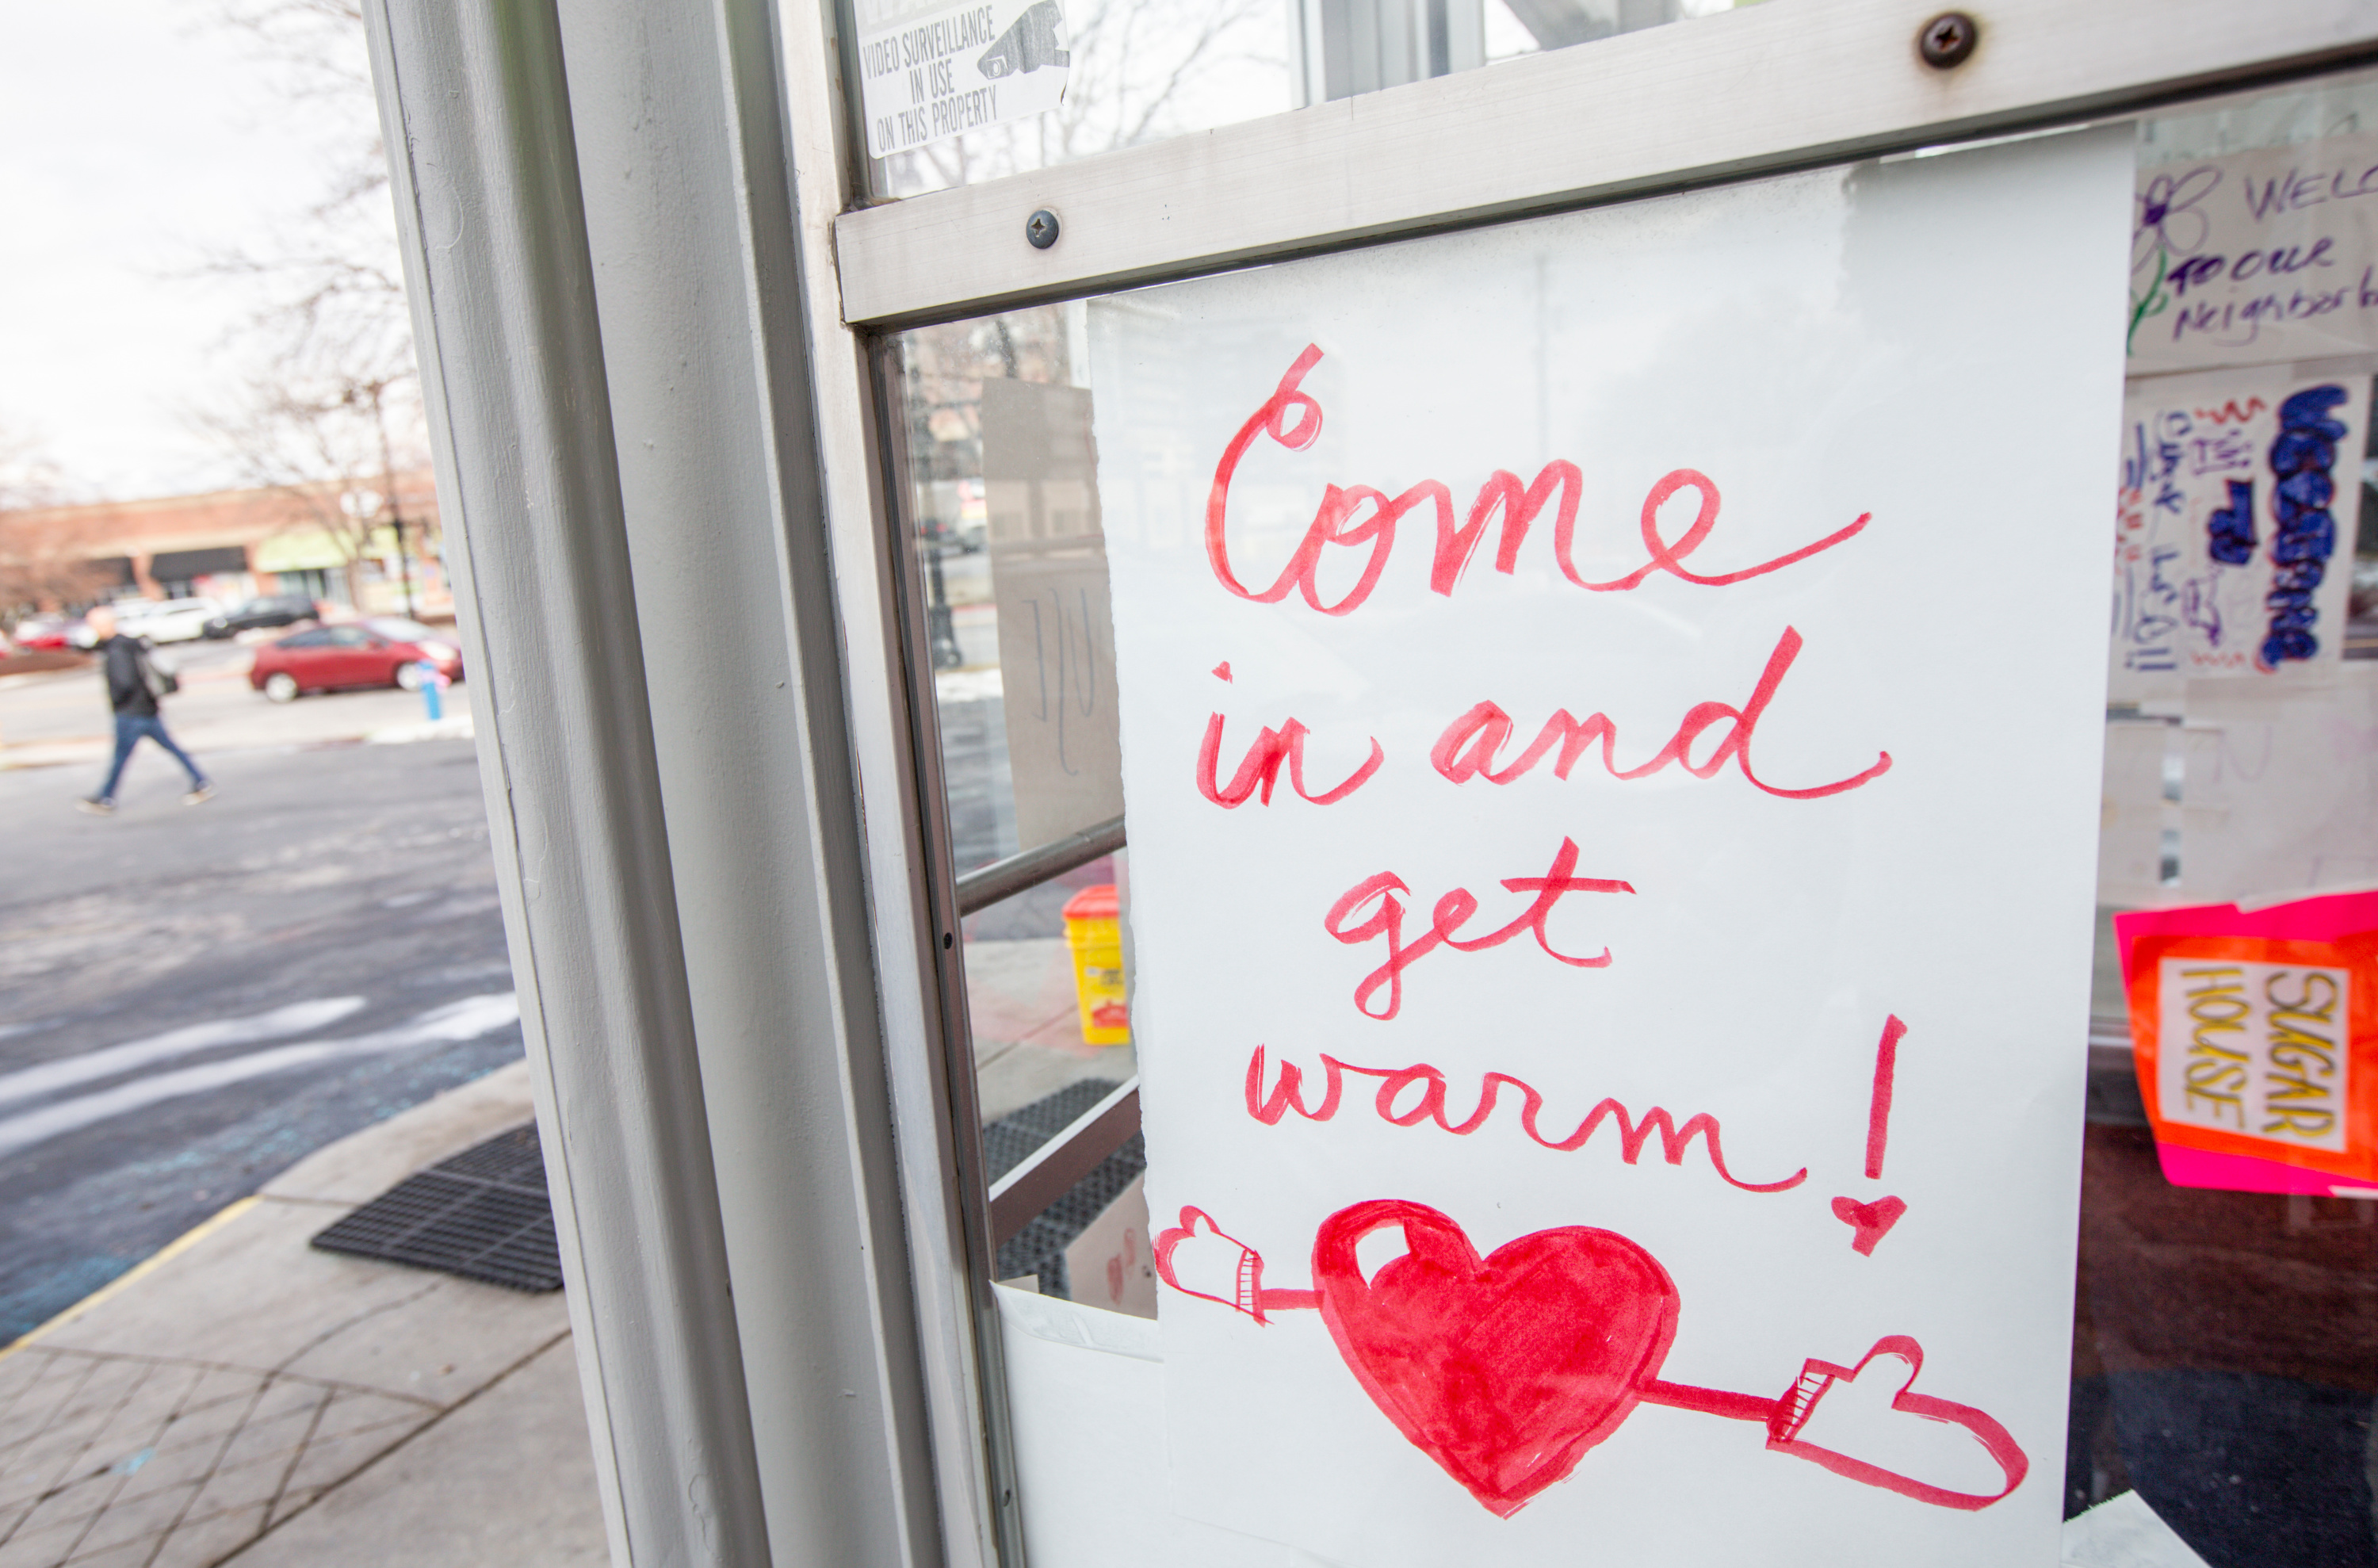 Posters showing neighborhood support decorate the entrance of the temporary Sugar House homeless shelter in Salt Lake City on Thursday, Jan. 23, 2020. The new shelter, which will provide cots, mats and blankets, opened Thursday night.